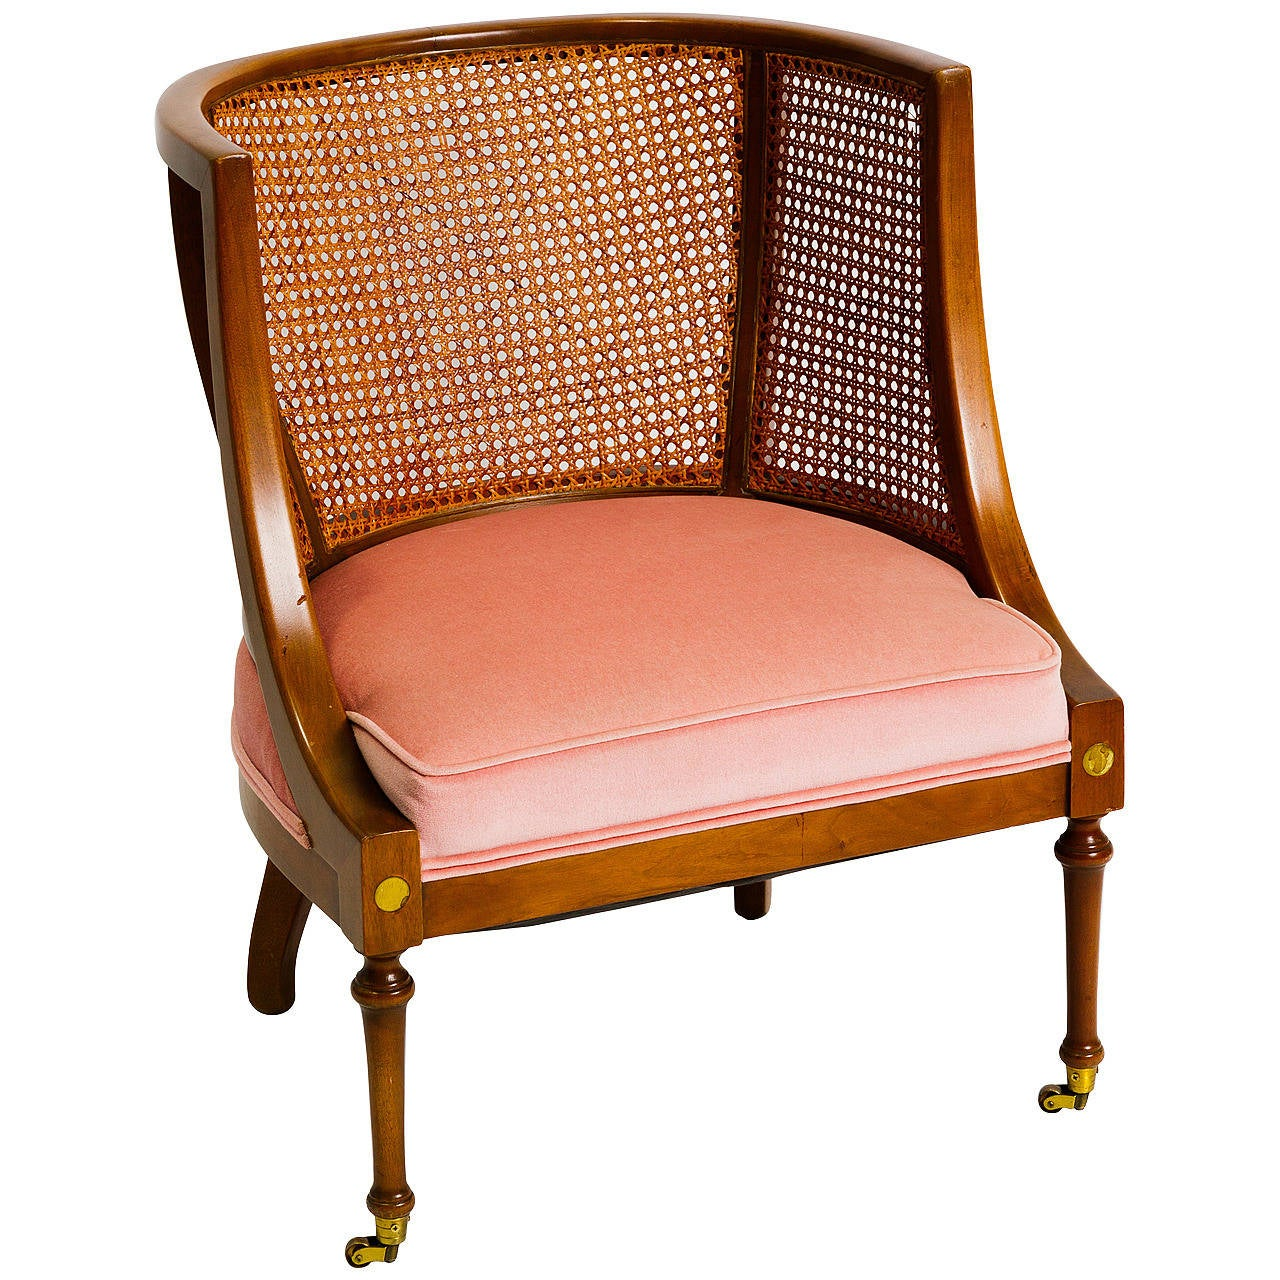 Regency Style Caned Lounge Chair By Bert England At 1stdibs